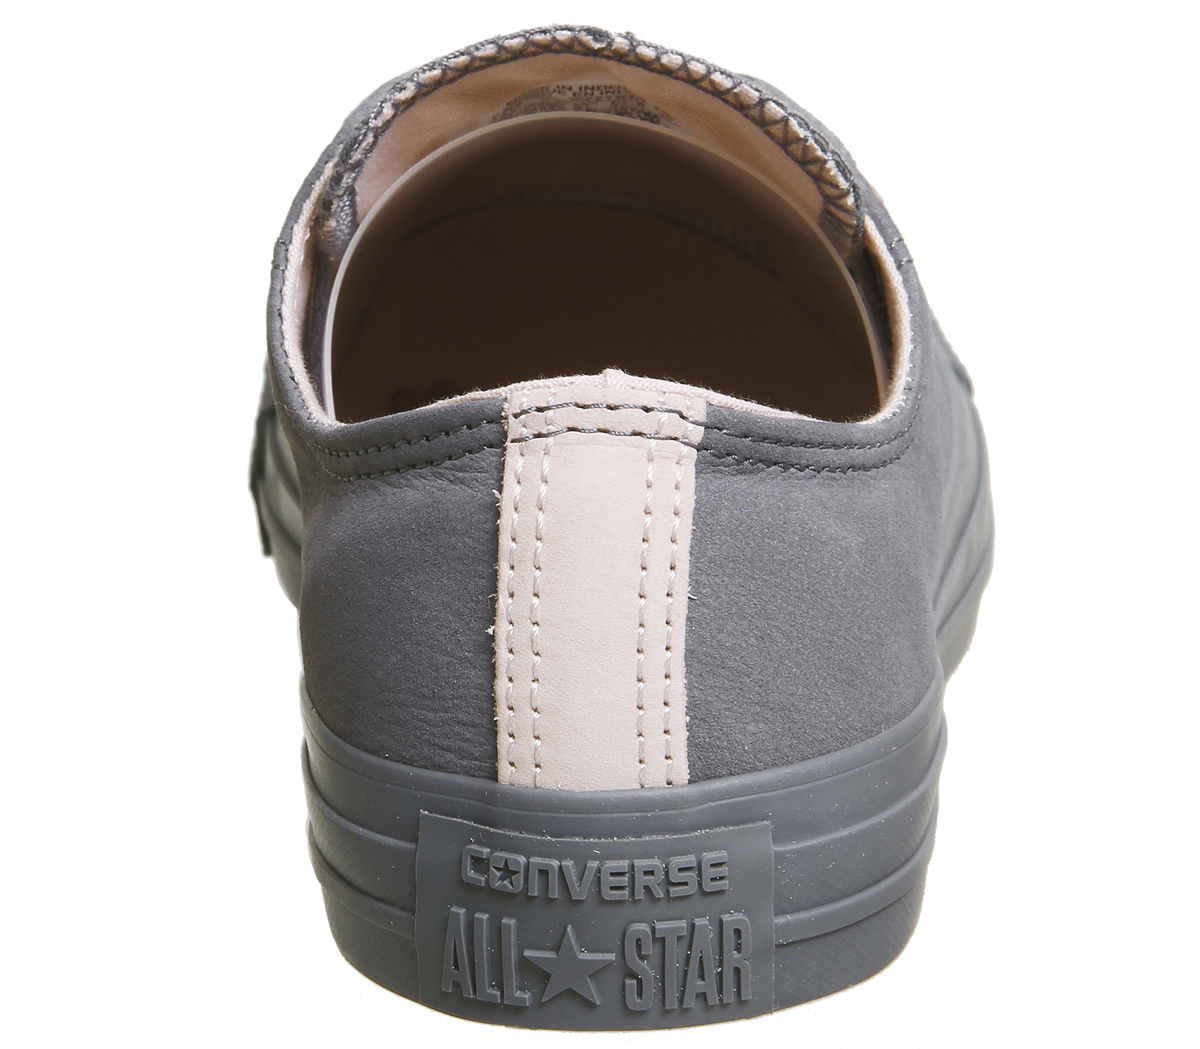 84e909c703c3 Womens Converse All Star Low Leather Light Carbon Potpourri Trainers ...